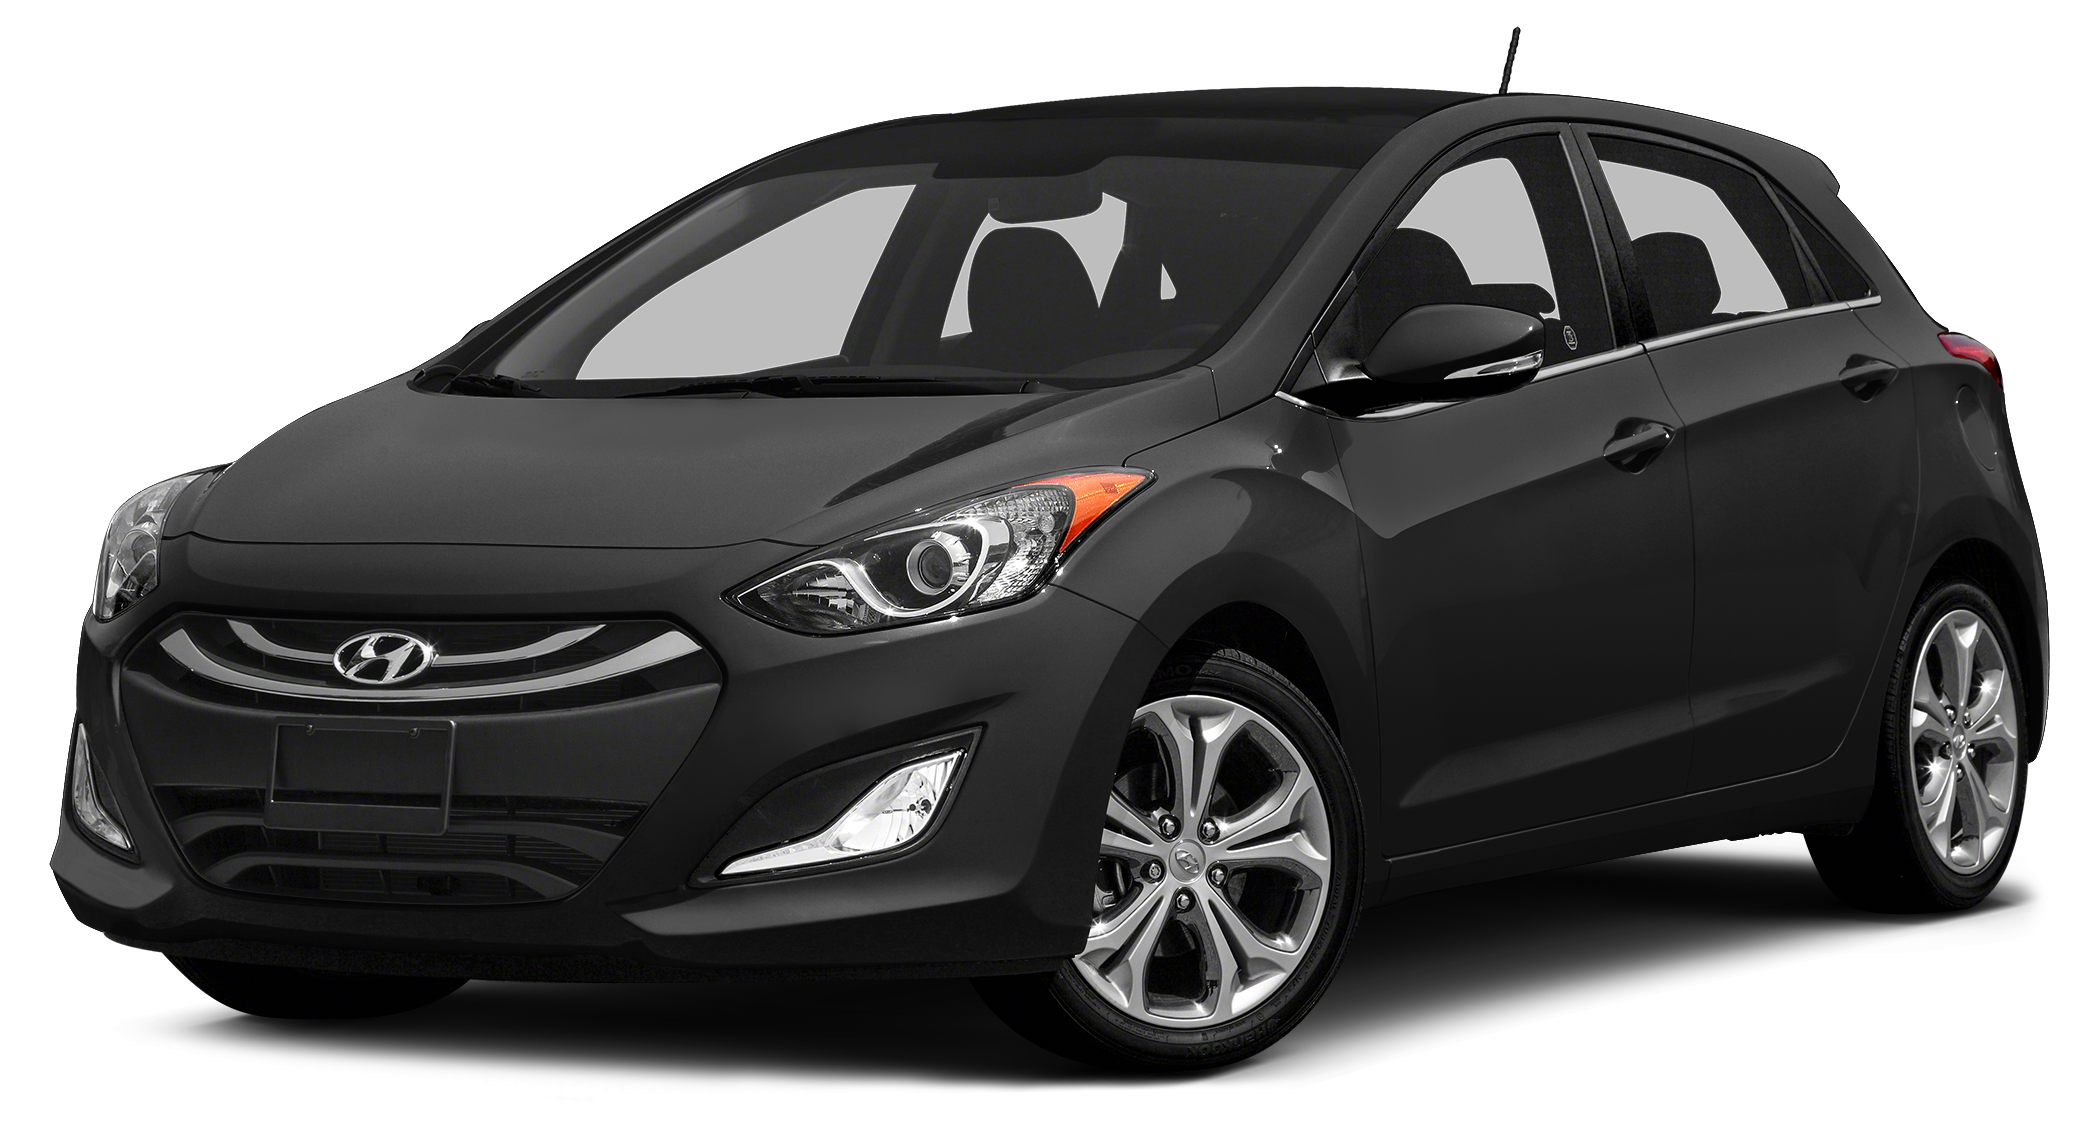 2013 Hyundai Elantra GT Base This 2013 Hyundai Elantra Gt is ready for summer vacation with plenty